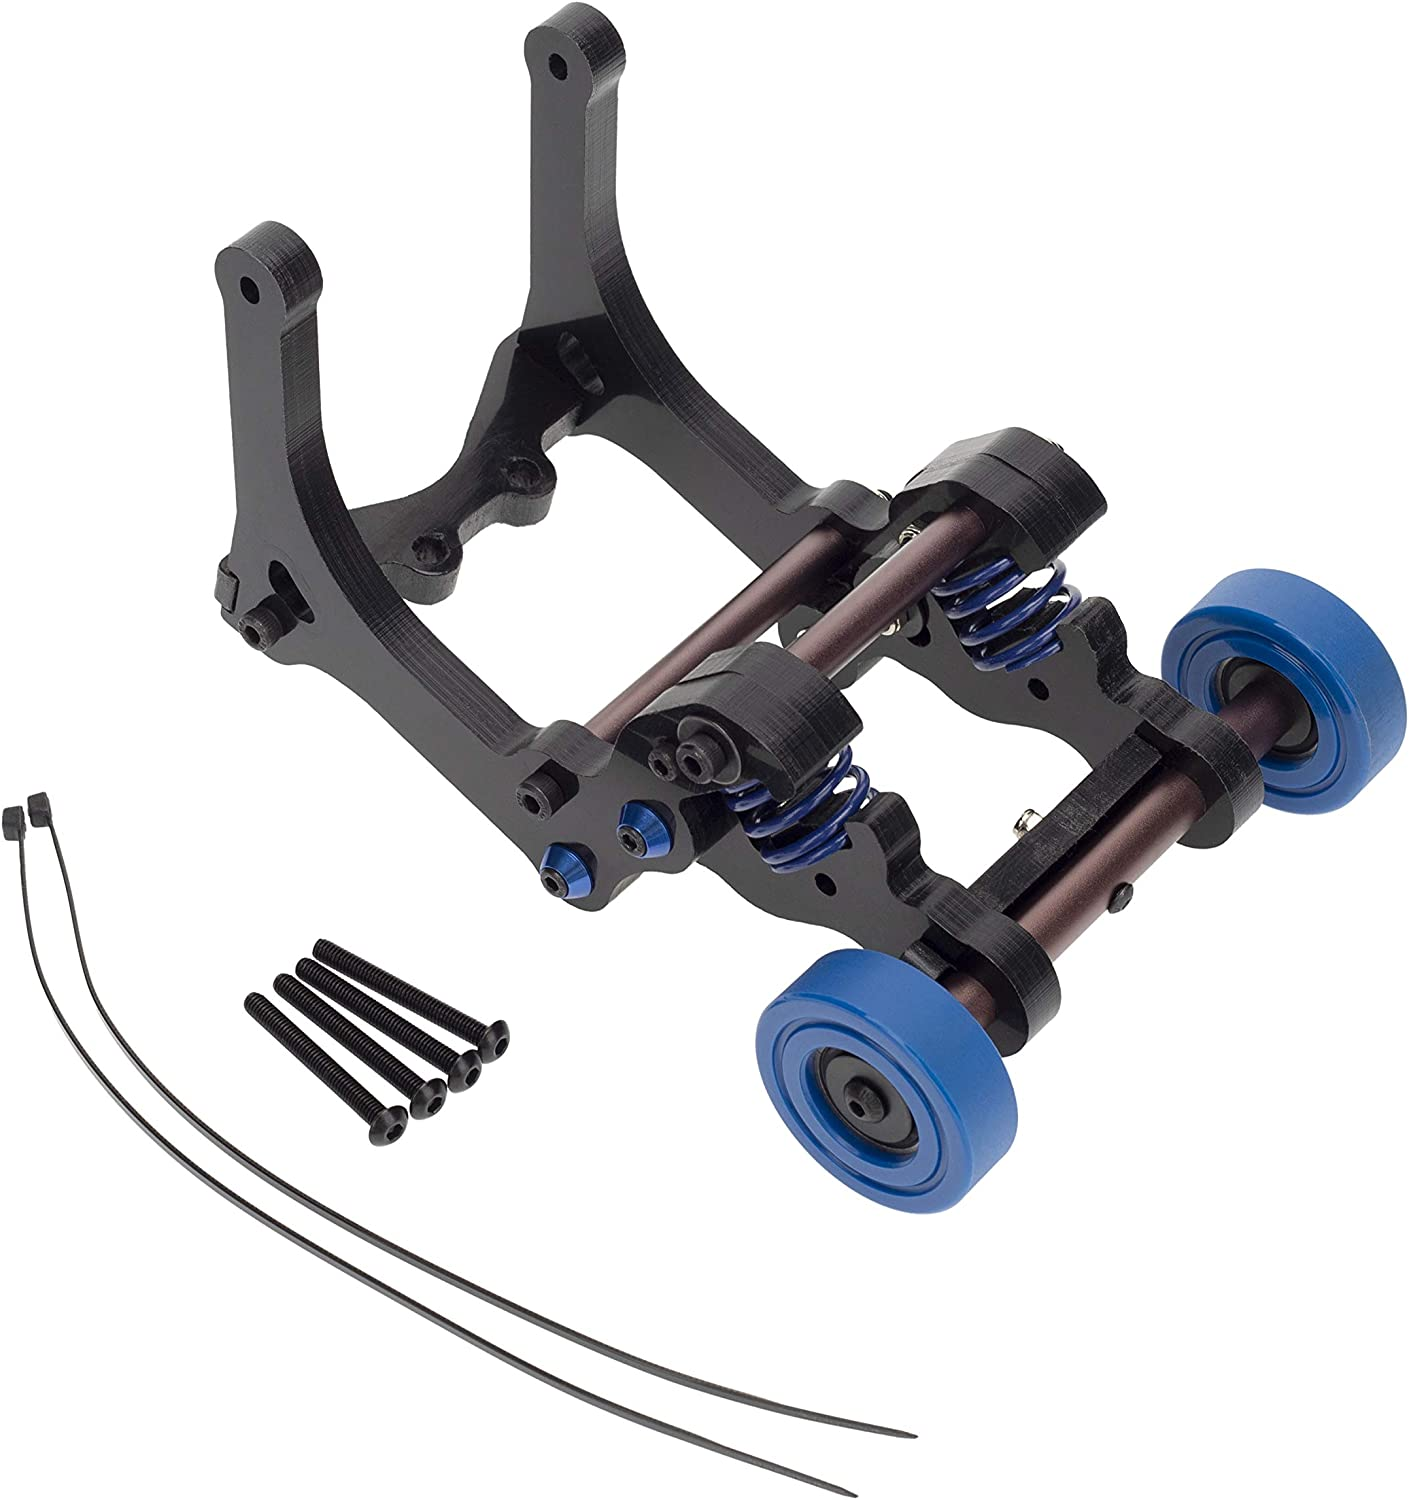 Ky-RC X-Maxx U Pgrade Part for 5 Traxxas 1 Dealing full price reduction Ranking TOP20 Rc Xmaxx Large